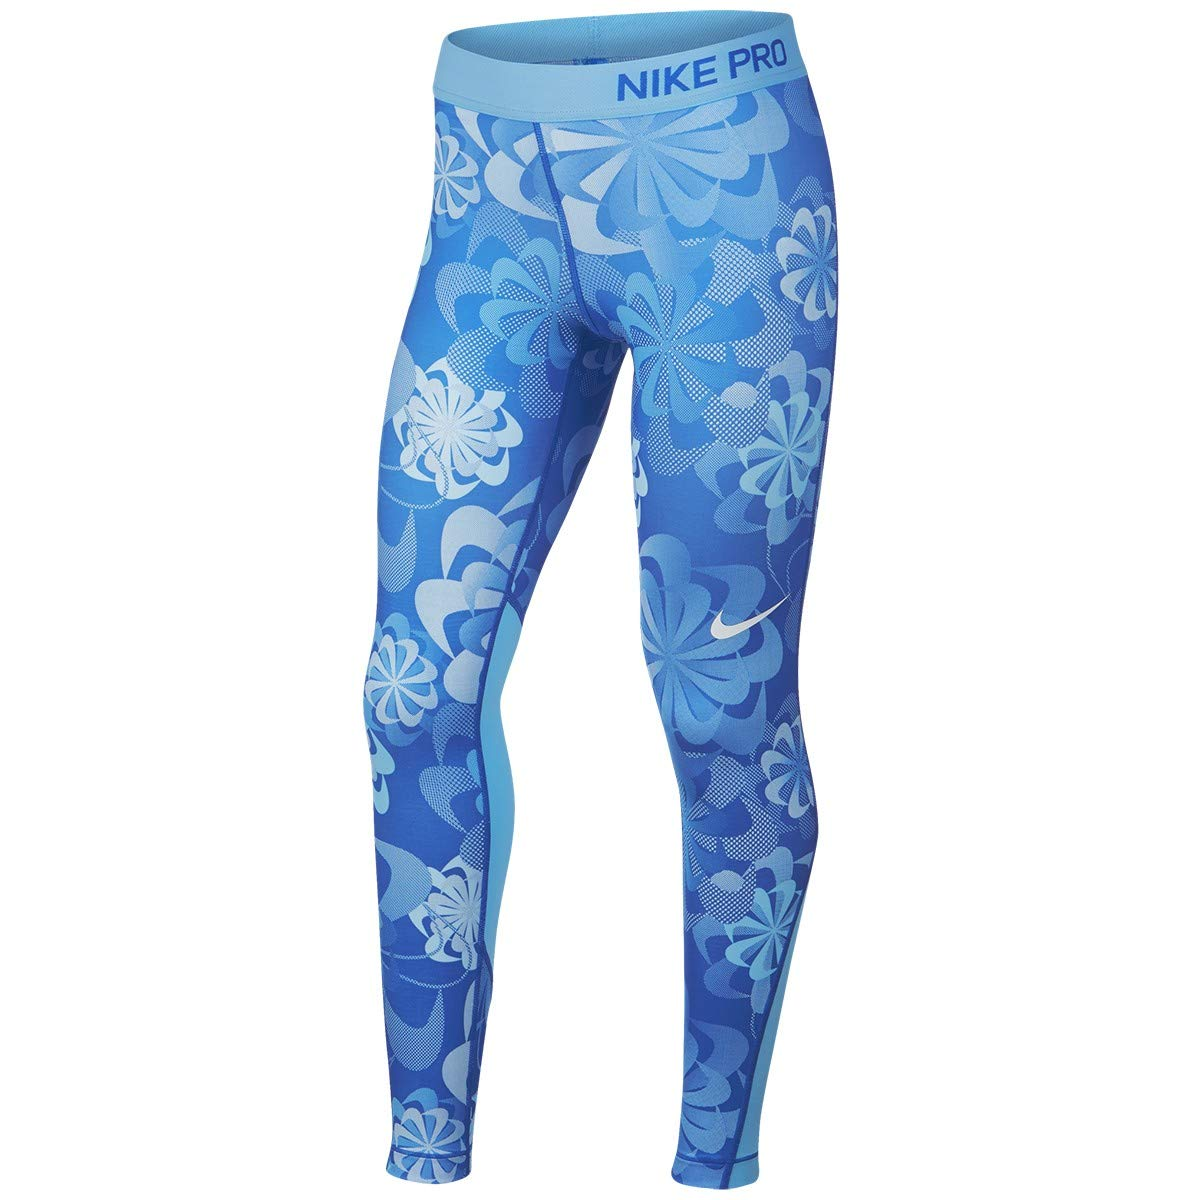 Nike Girl's Pro Printed Training Tights Small Blue